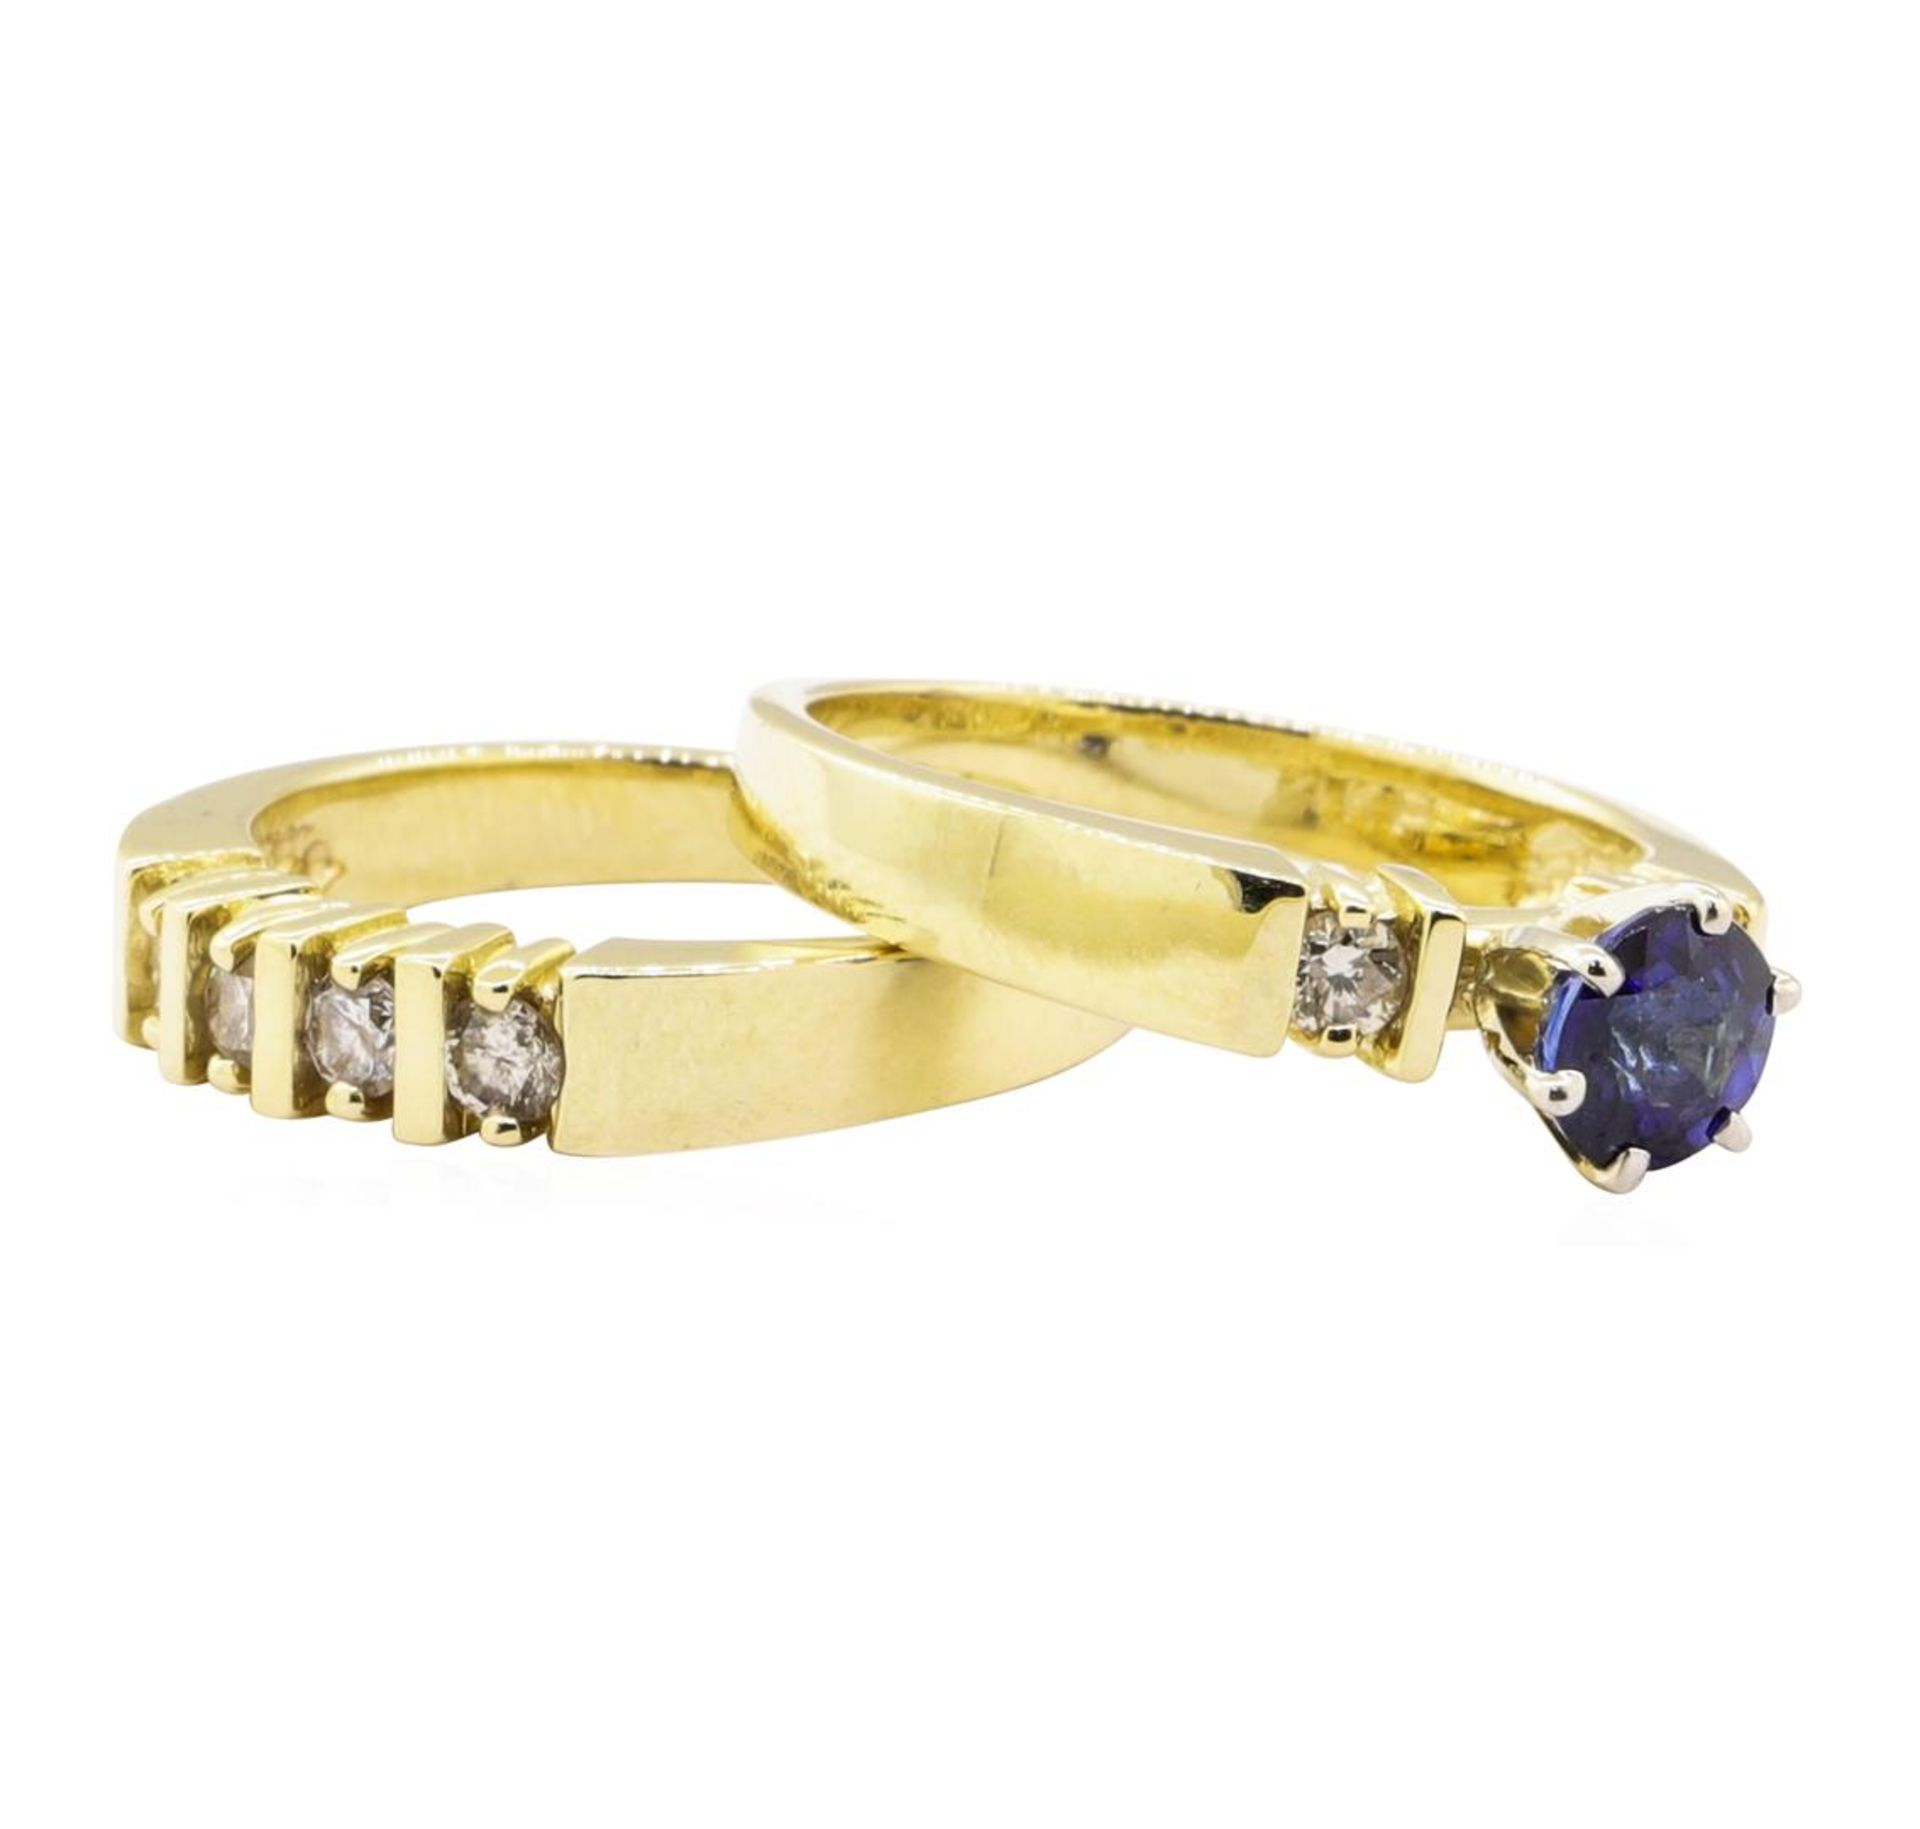 1.37 ctw Blue Sapphire And Diamond Ring And Band - 14KT Yellow Gold - Image 3 of 4